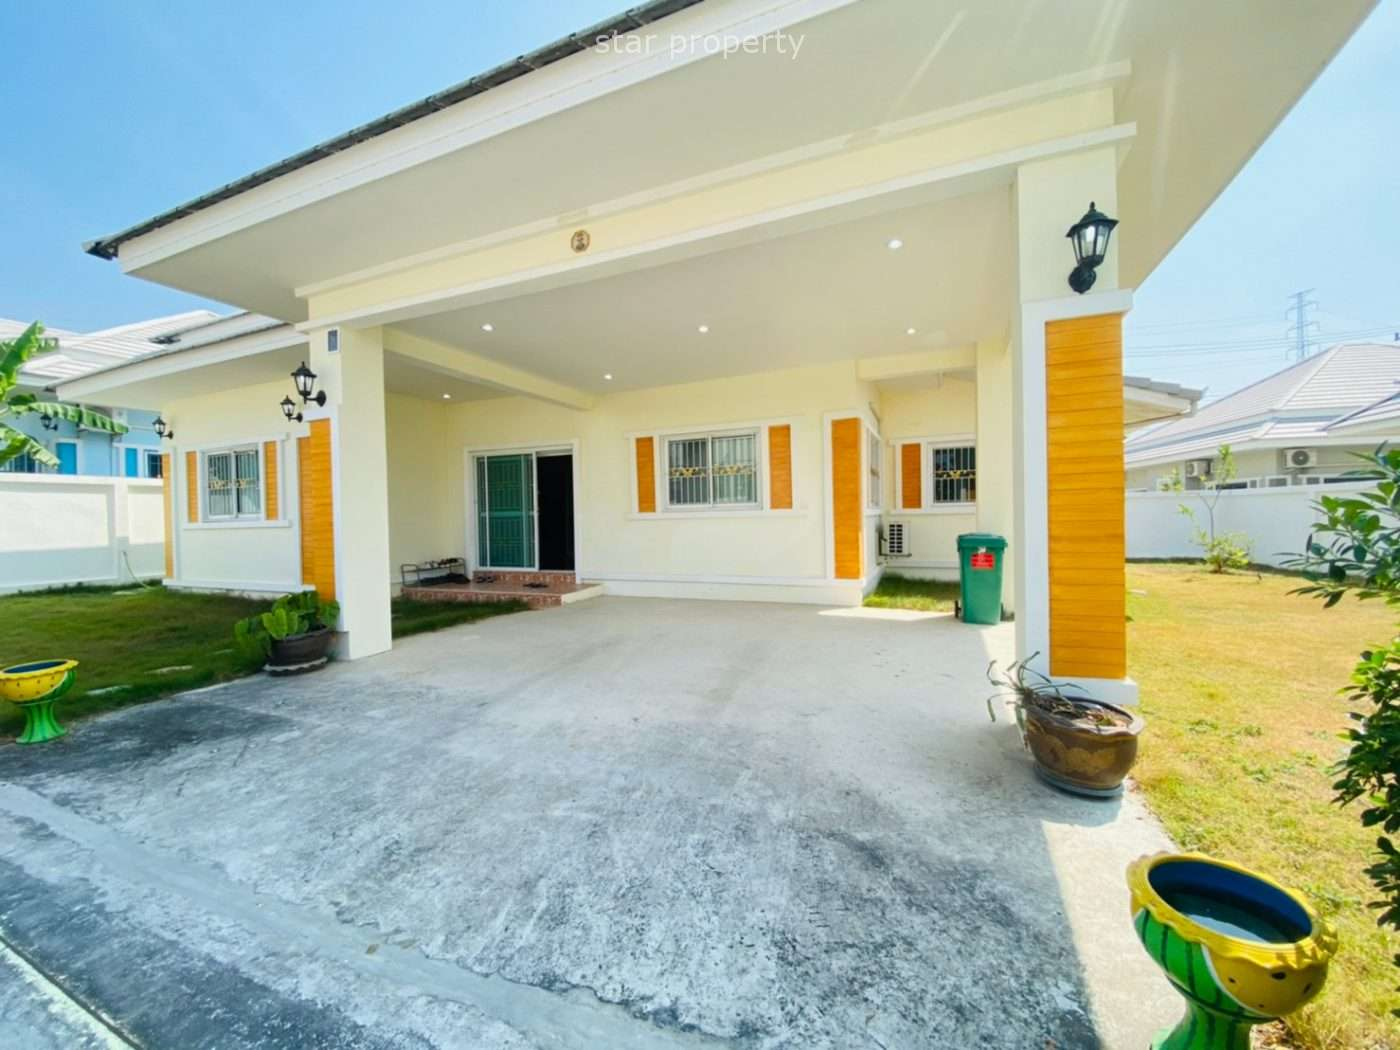 Bungalow 3 bedrooms at 88 City